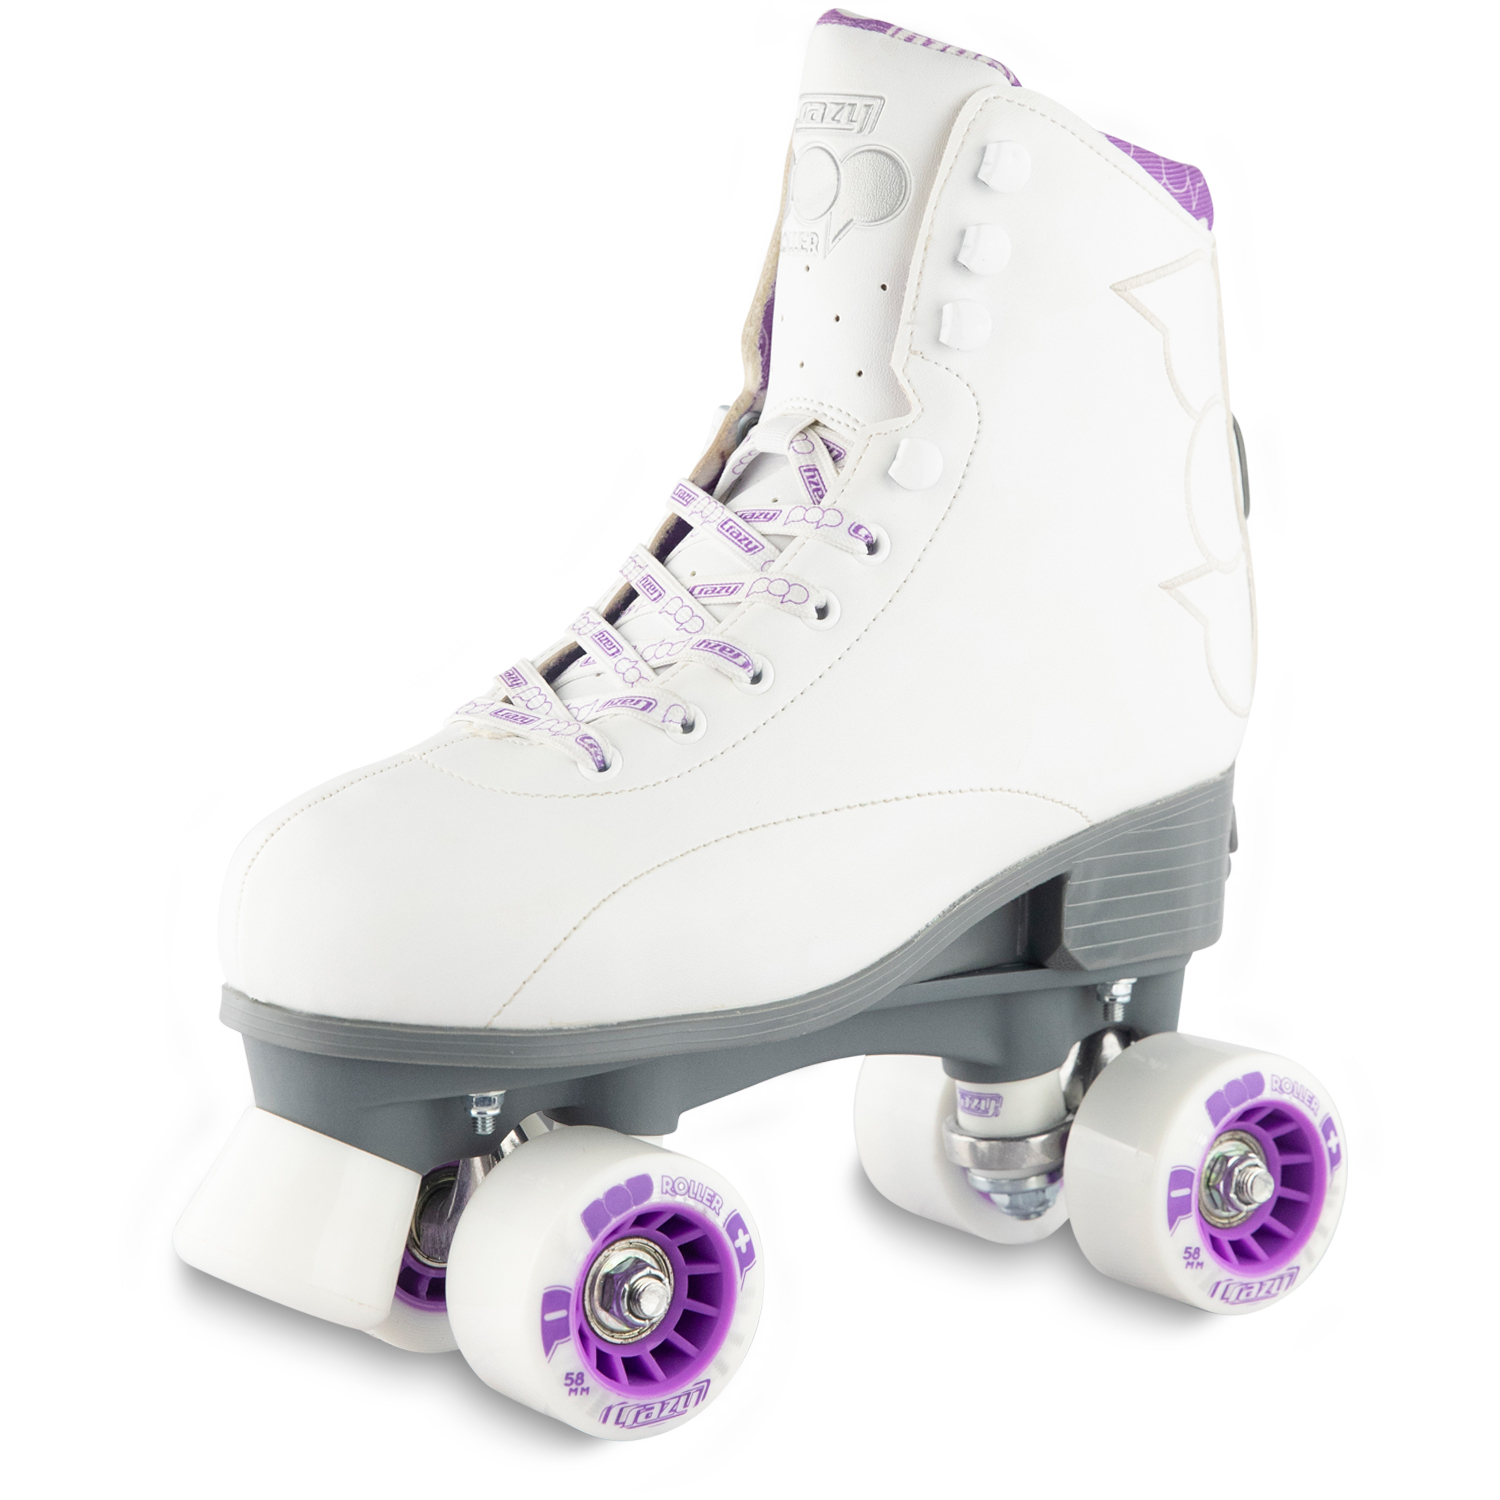 Girls white roller skates